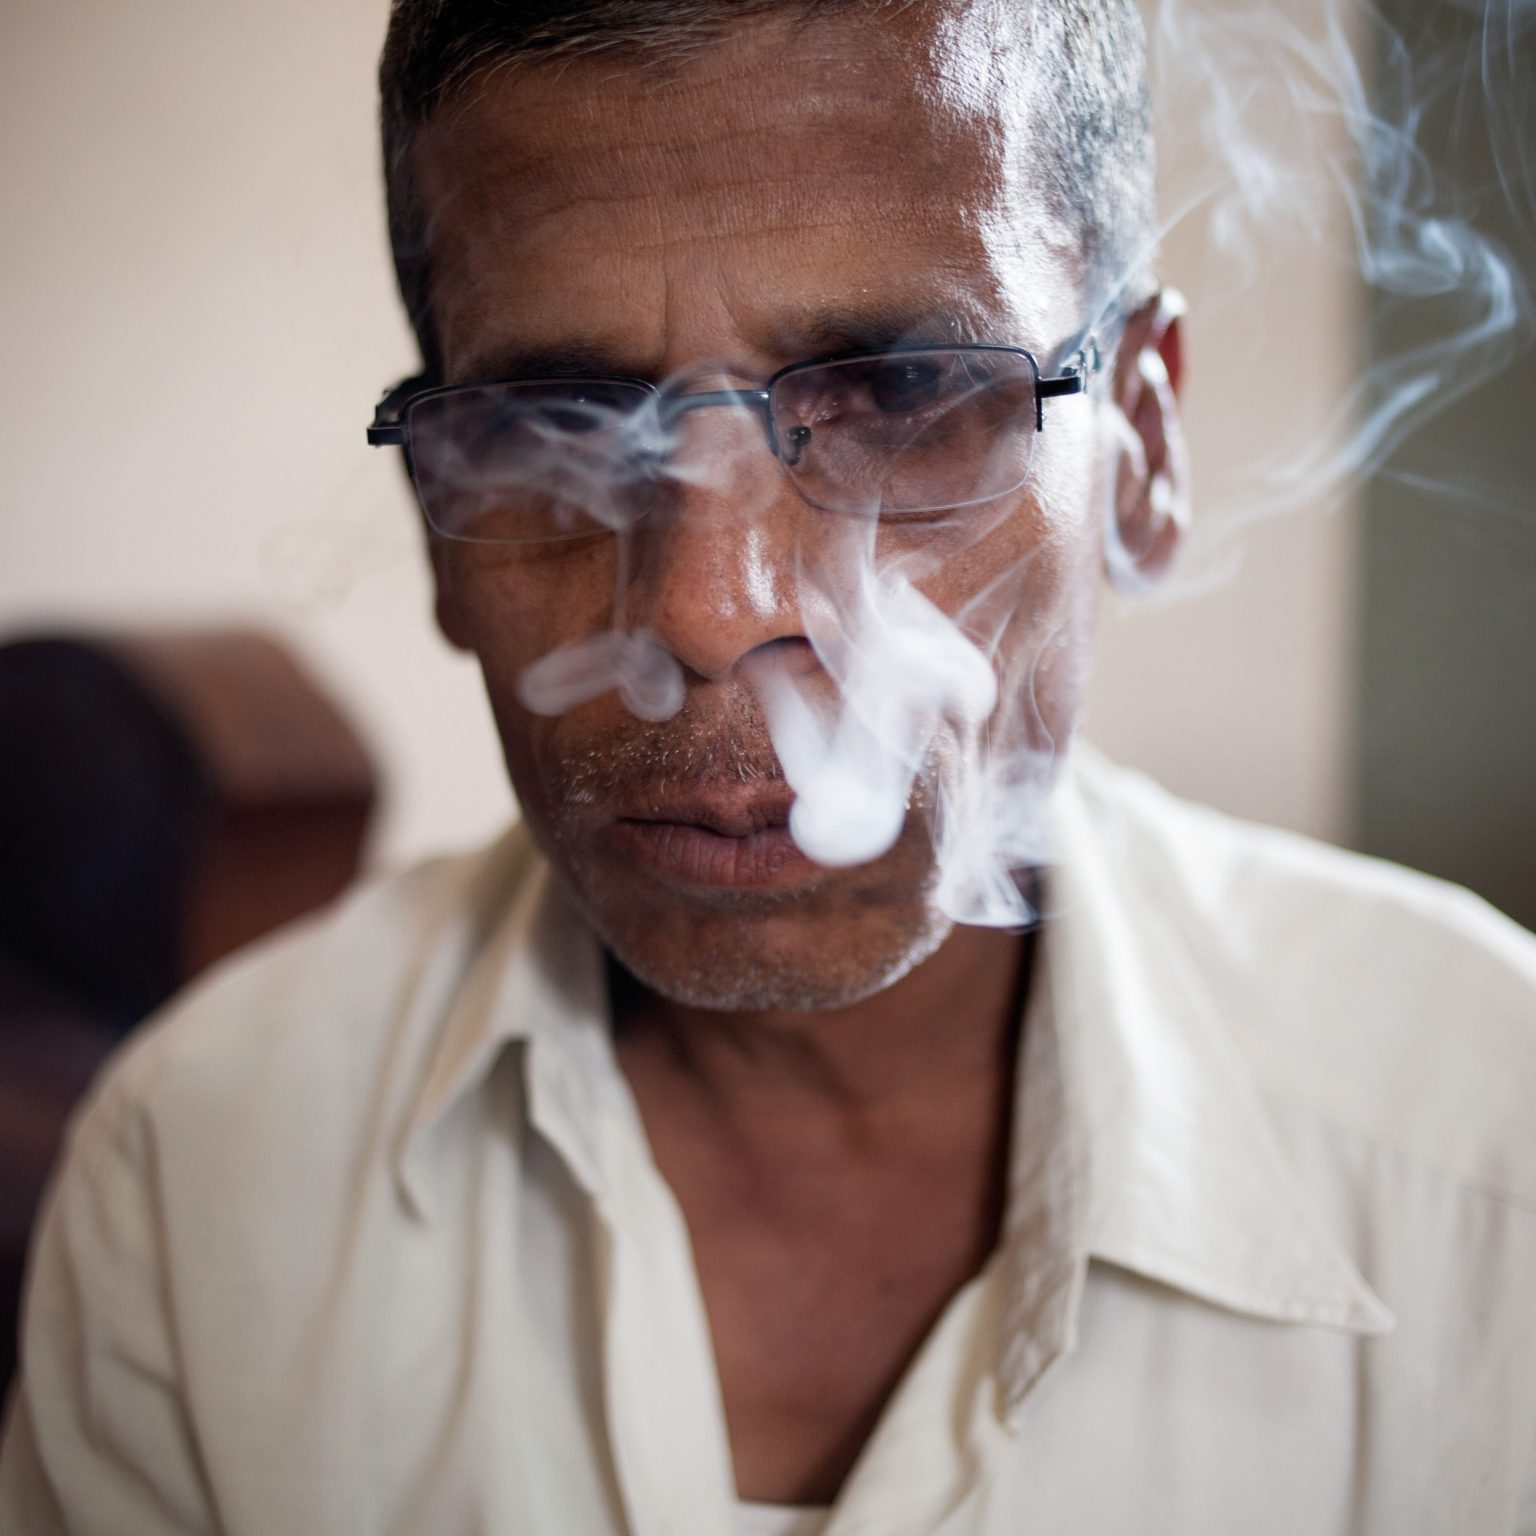 Nipani, India. A bidi tobacco taster expert employed by Shah Chhanganlal Ugarchand, one of the largest tobacco commission agents of the region. A tobacco taster smokes up to 100 bidis/day to grade the different batches of tobacco before sales.